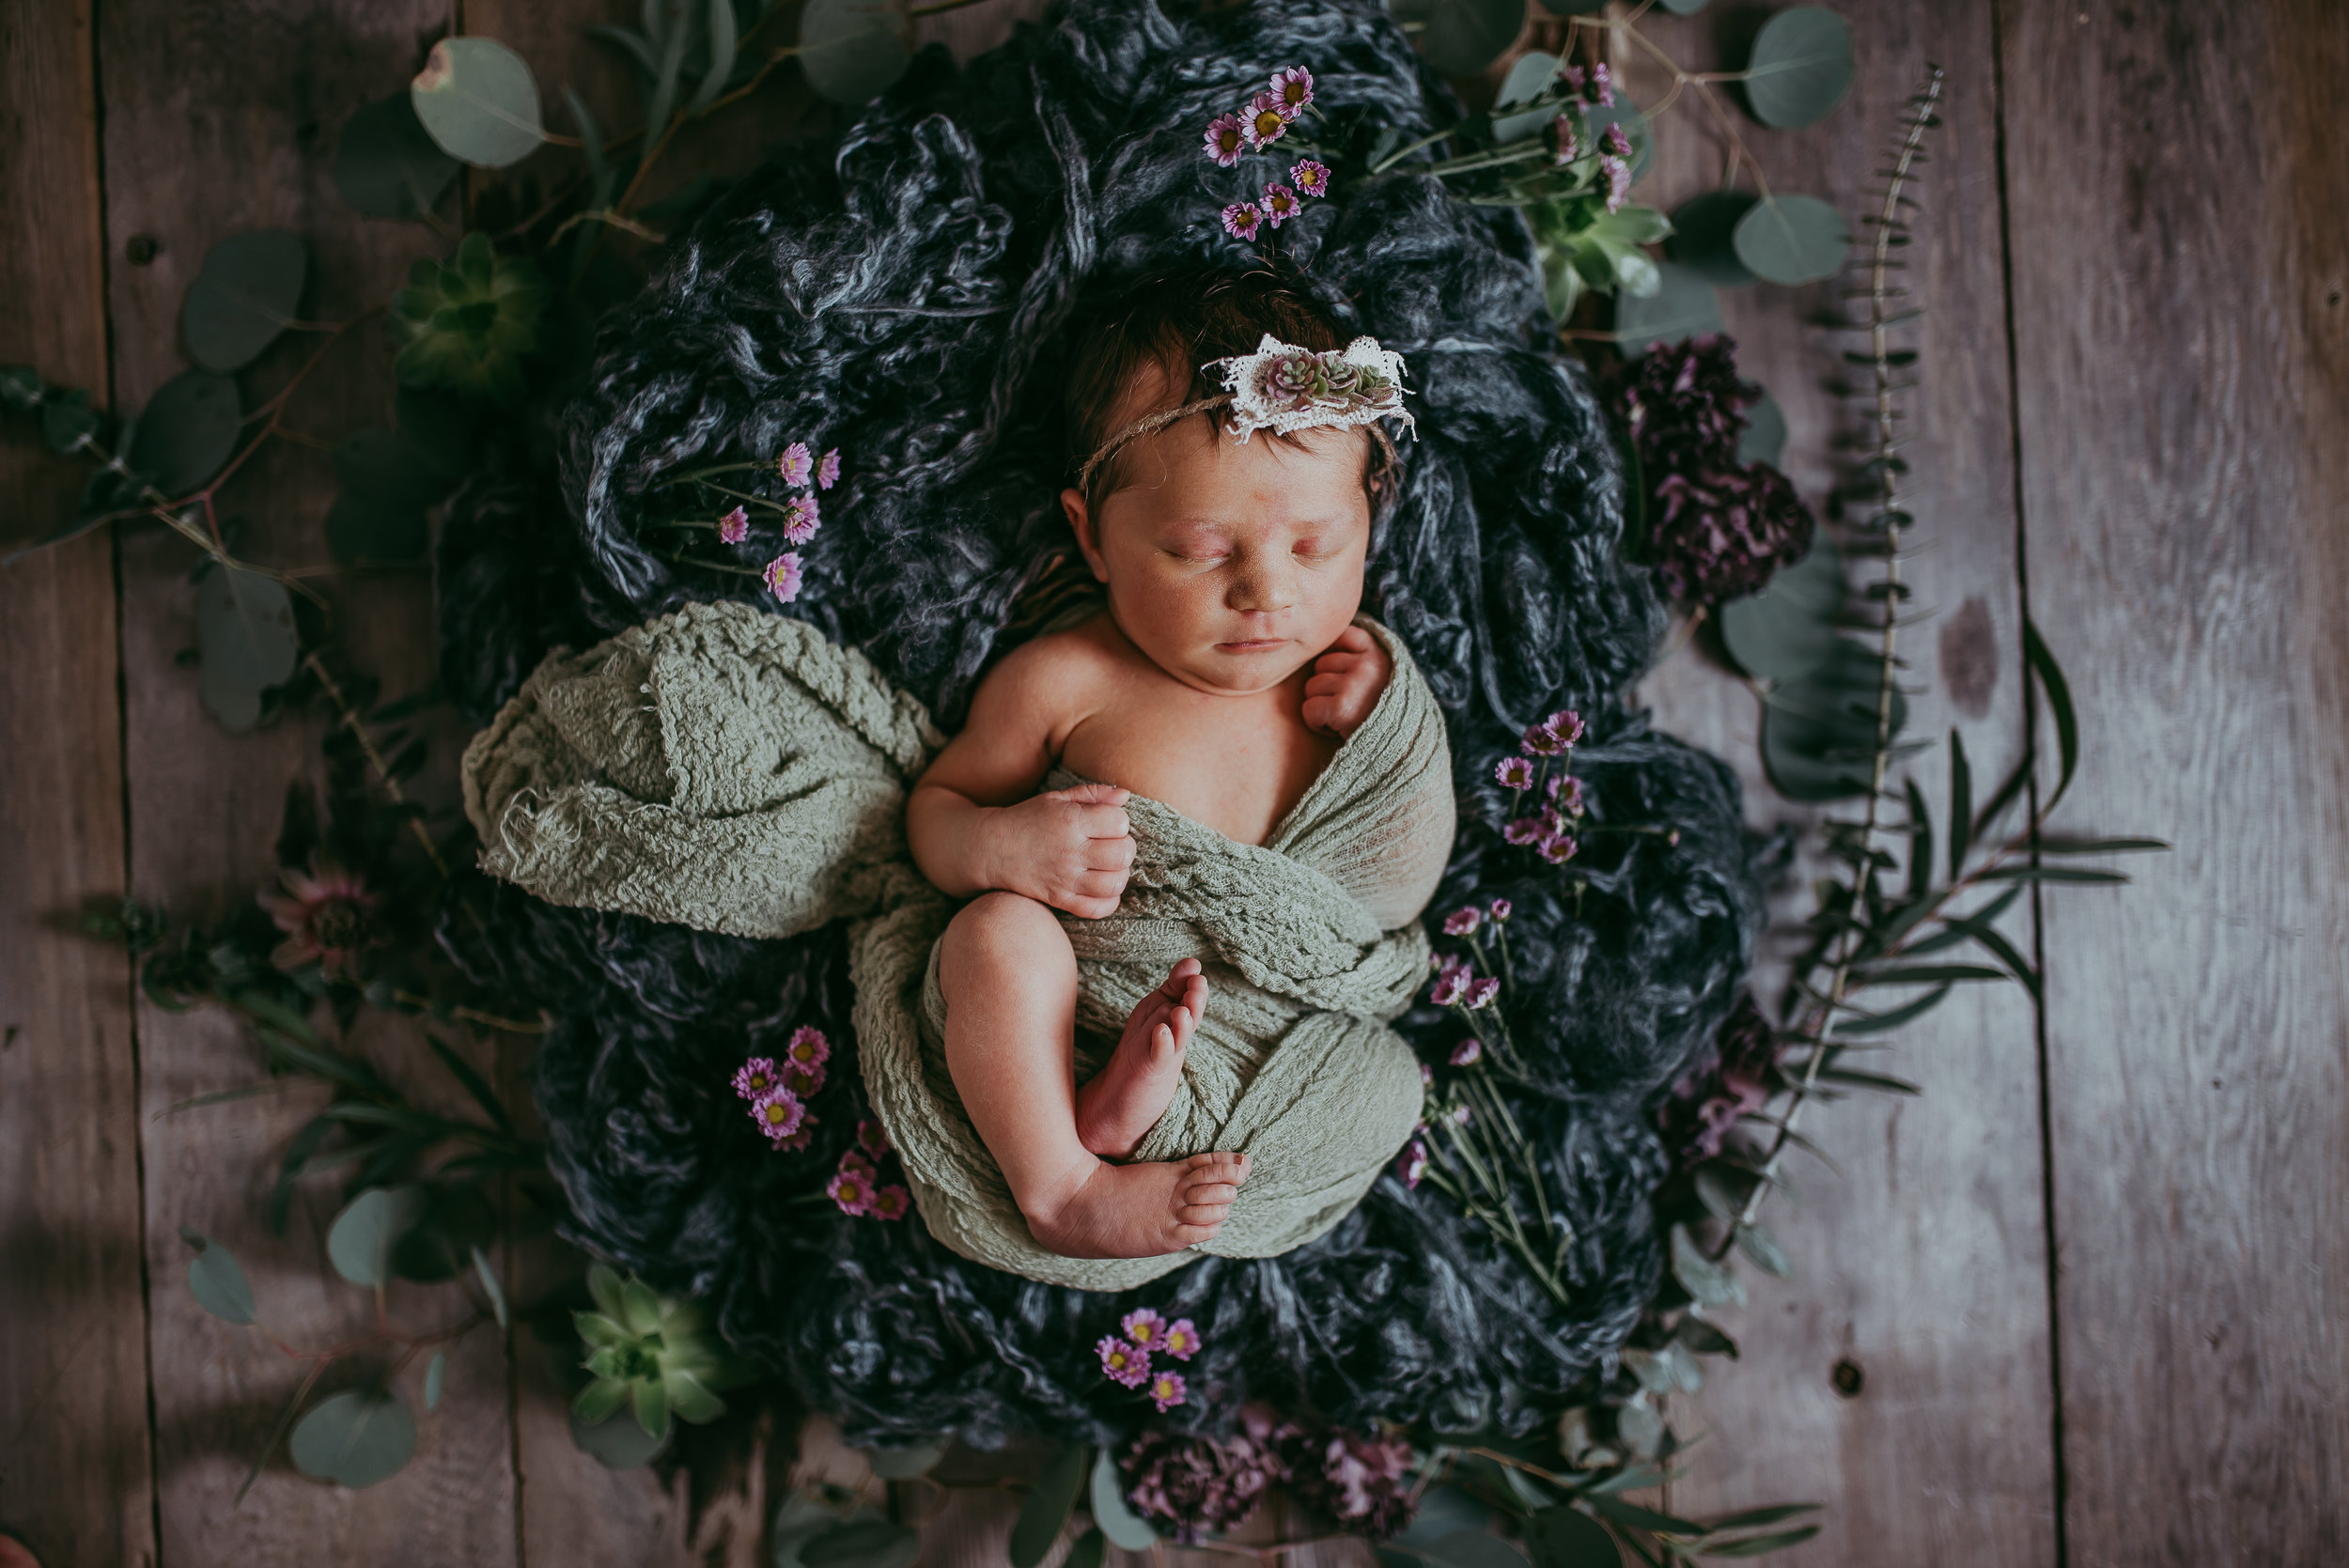 Sunshine_Coast_B.C_Newborn_Photographer_Paige_lorraine_photography (10).jpg